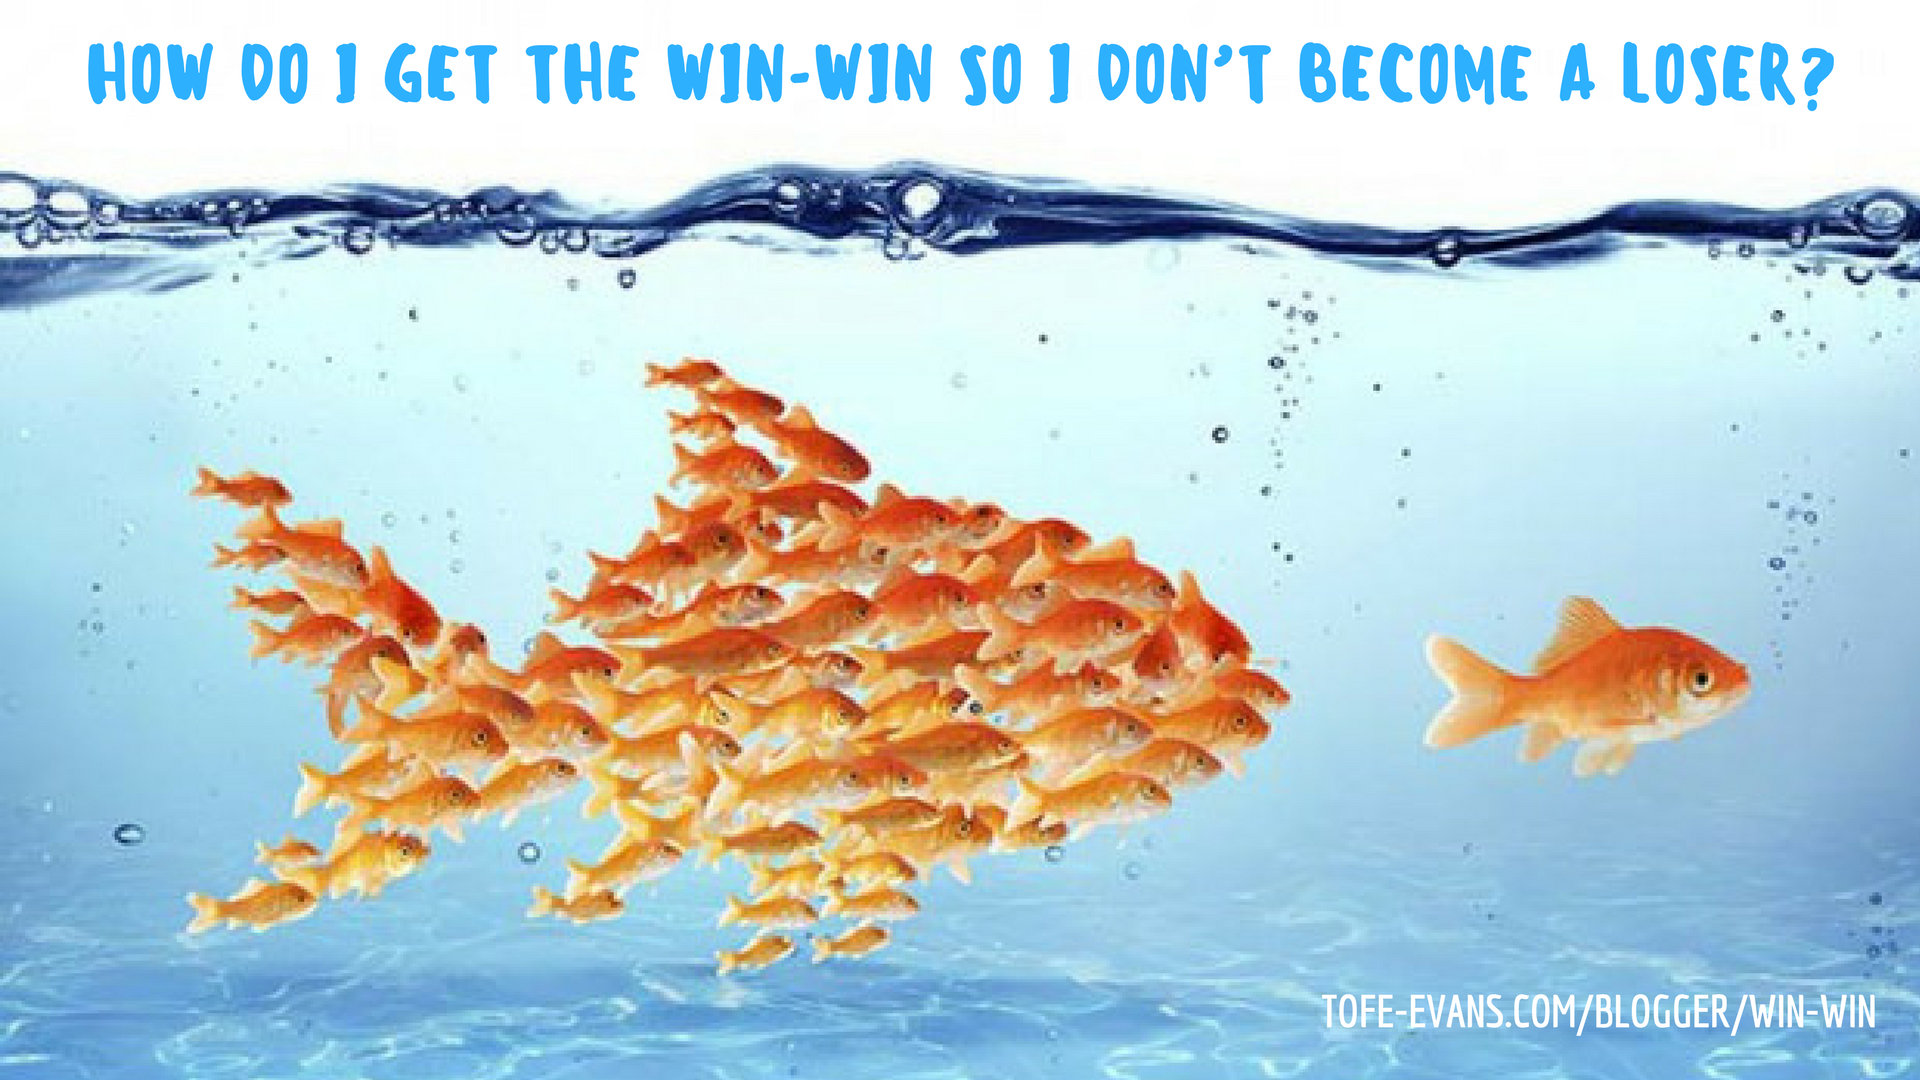 BLOG - HOW DO I GET THE WIN-WIN SO I DON'T BECOME A LOSER_.png